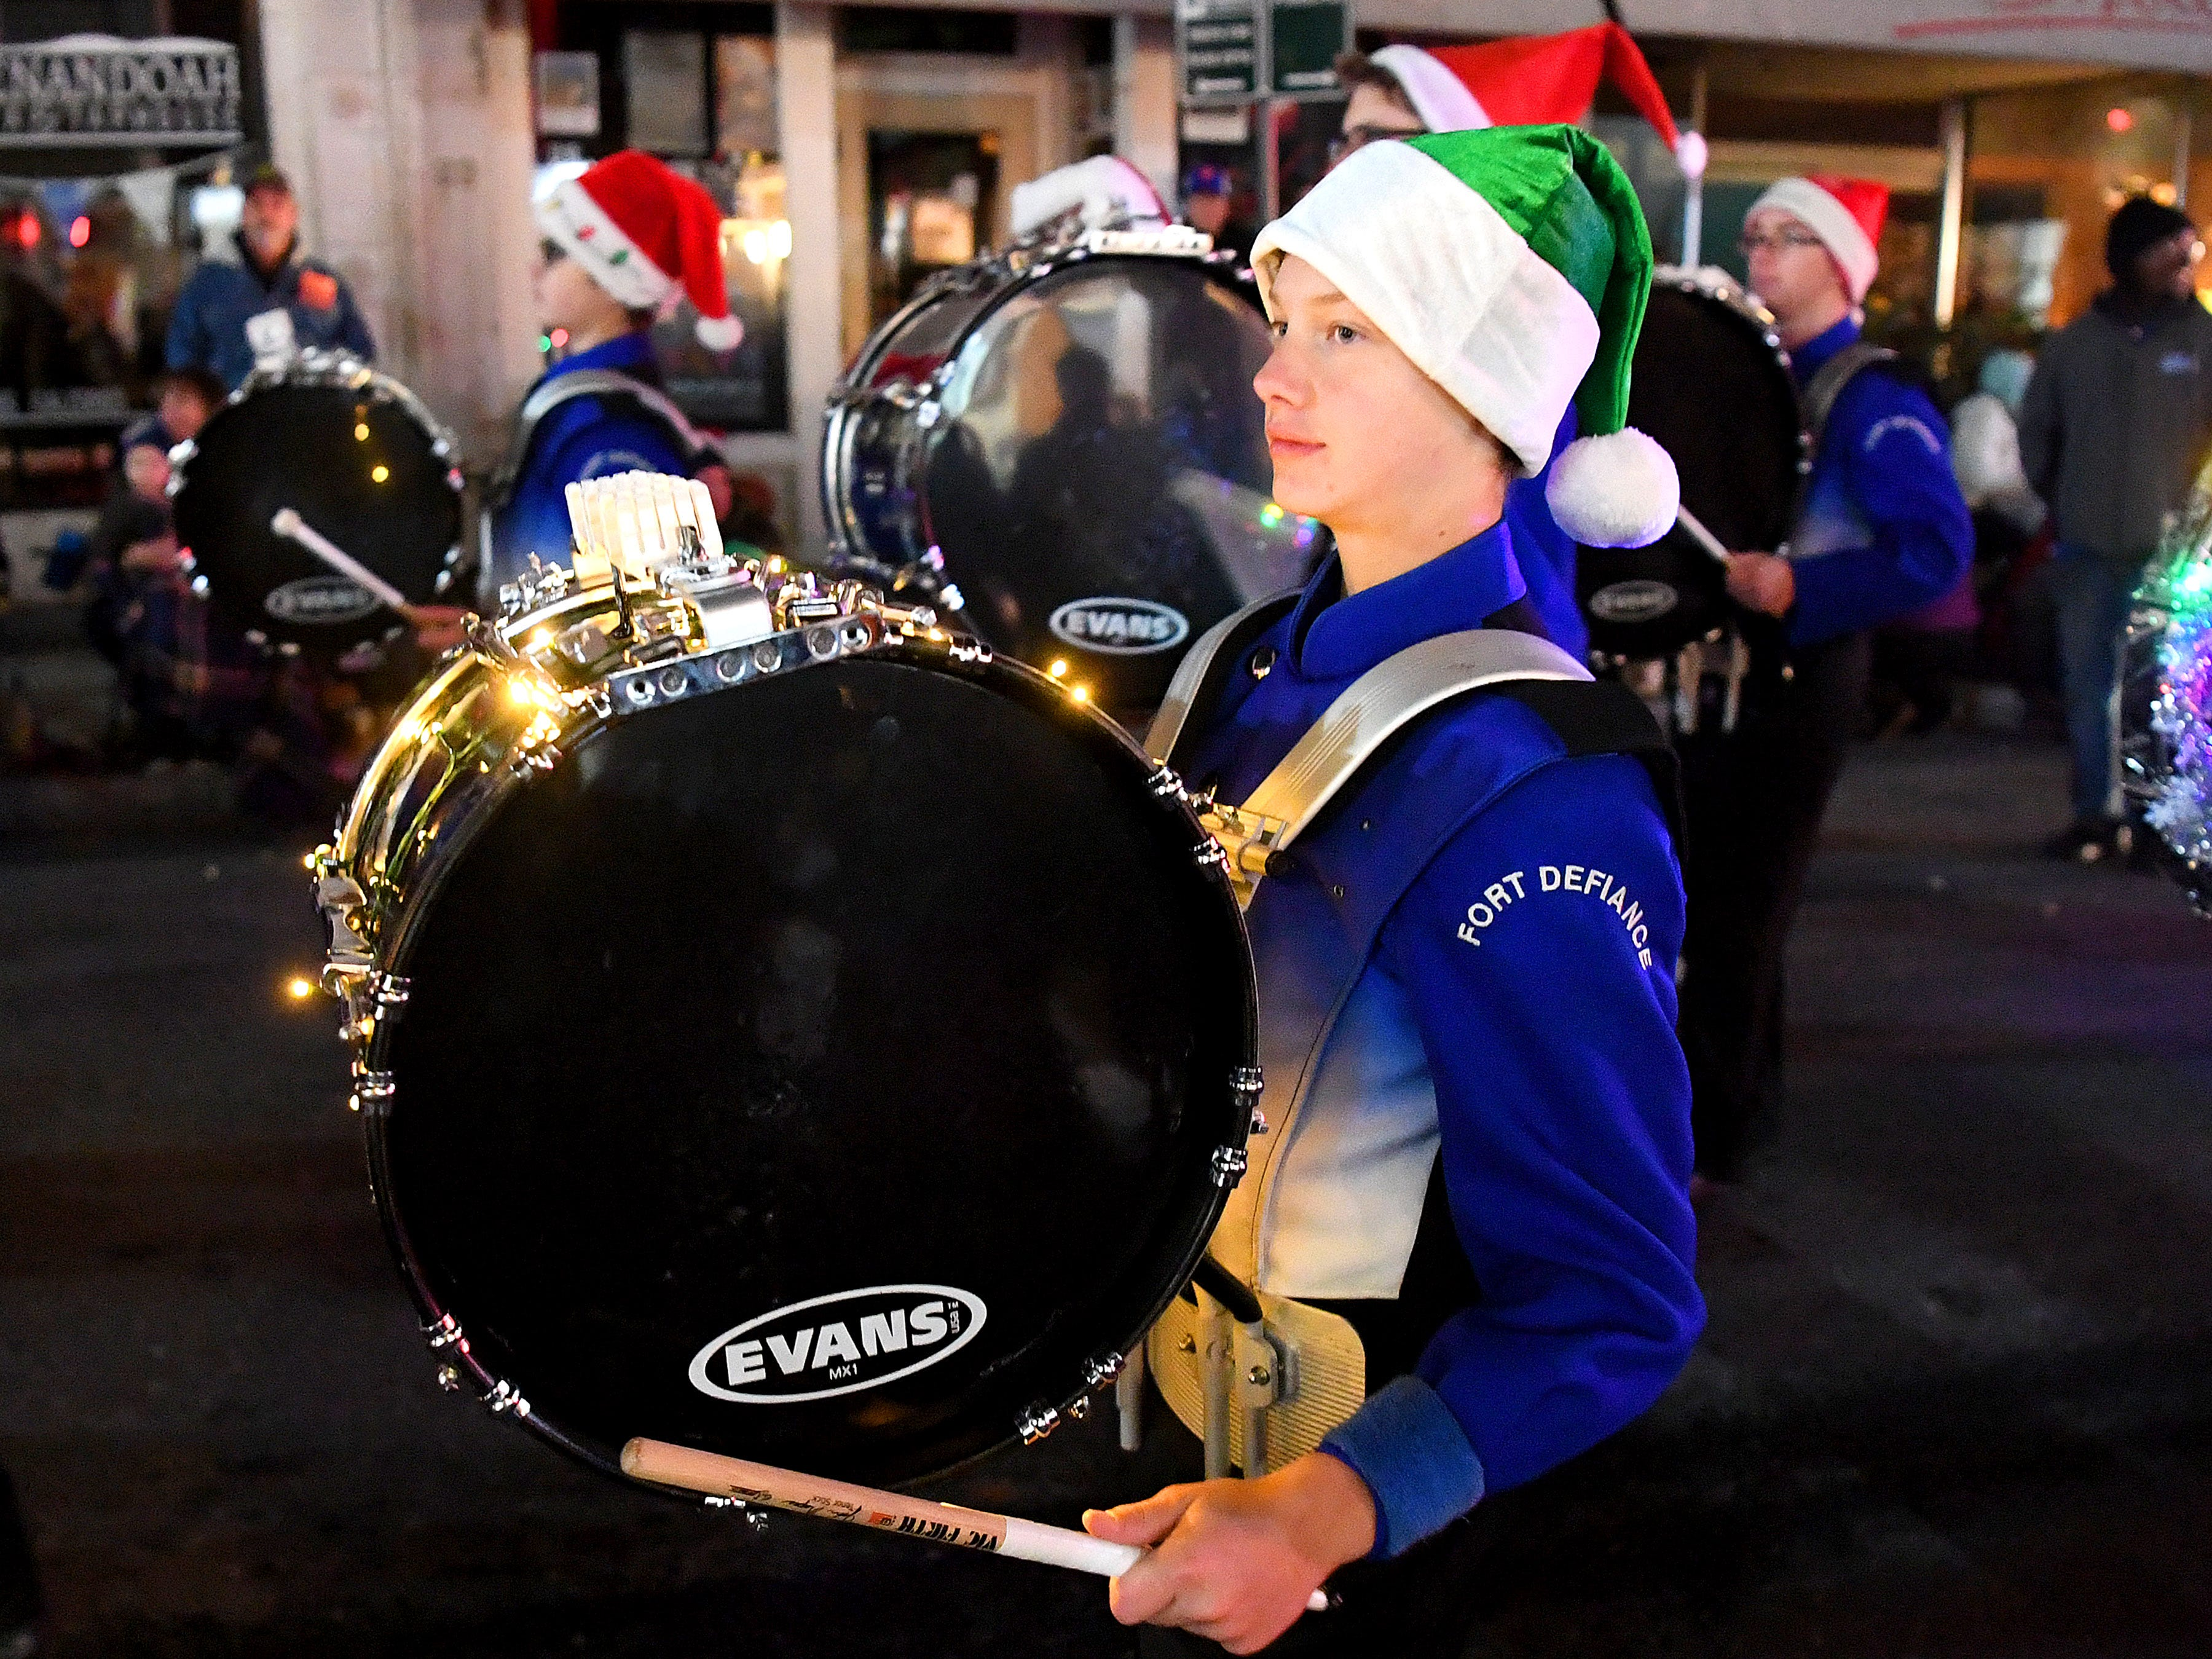 The Fort Defiance High School marching band performs during the Staunton Christmas Parade on Monday, Nov. 26, 2018.